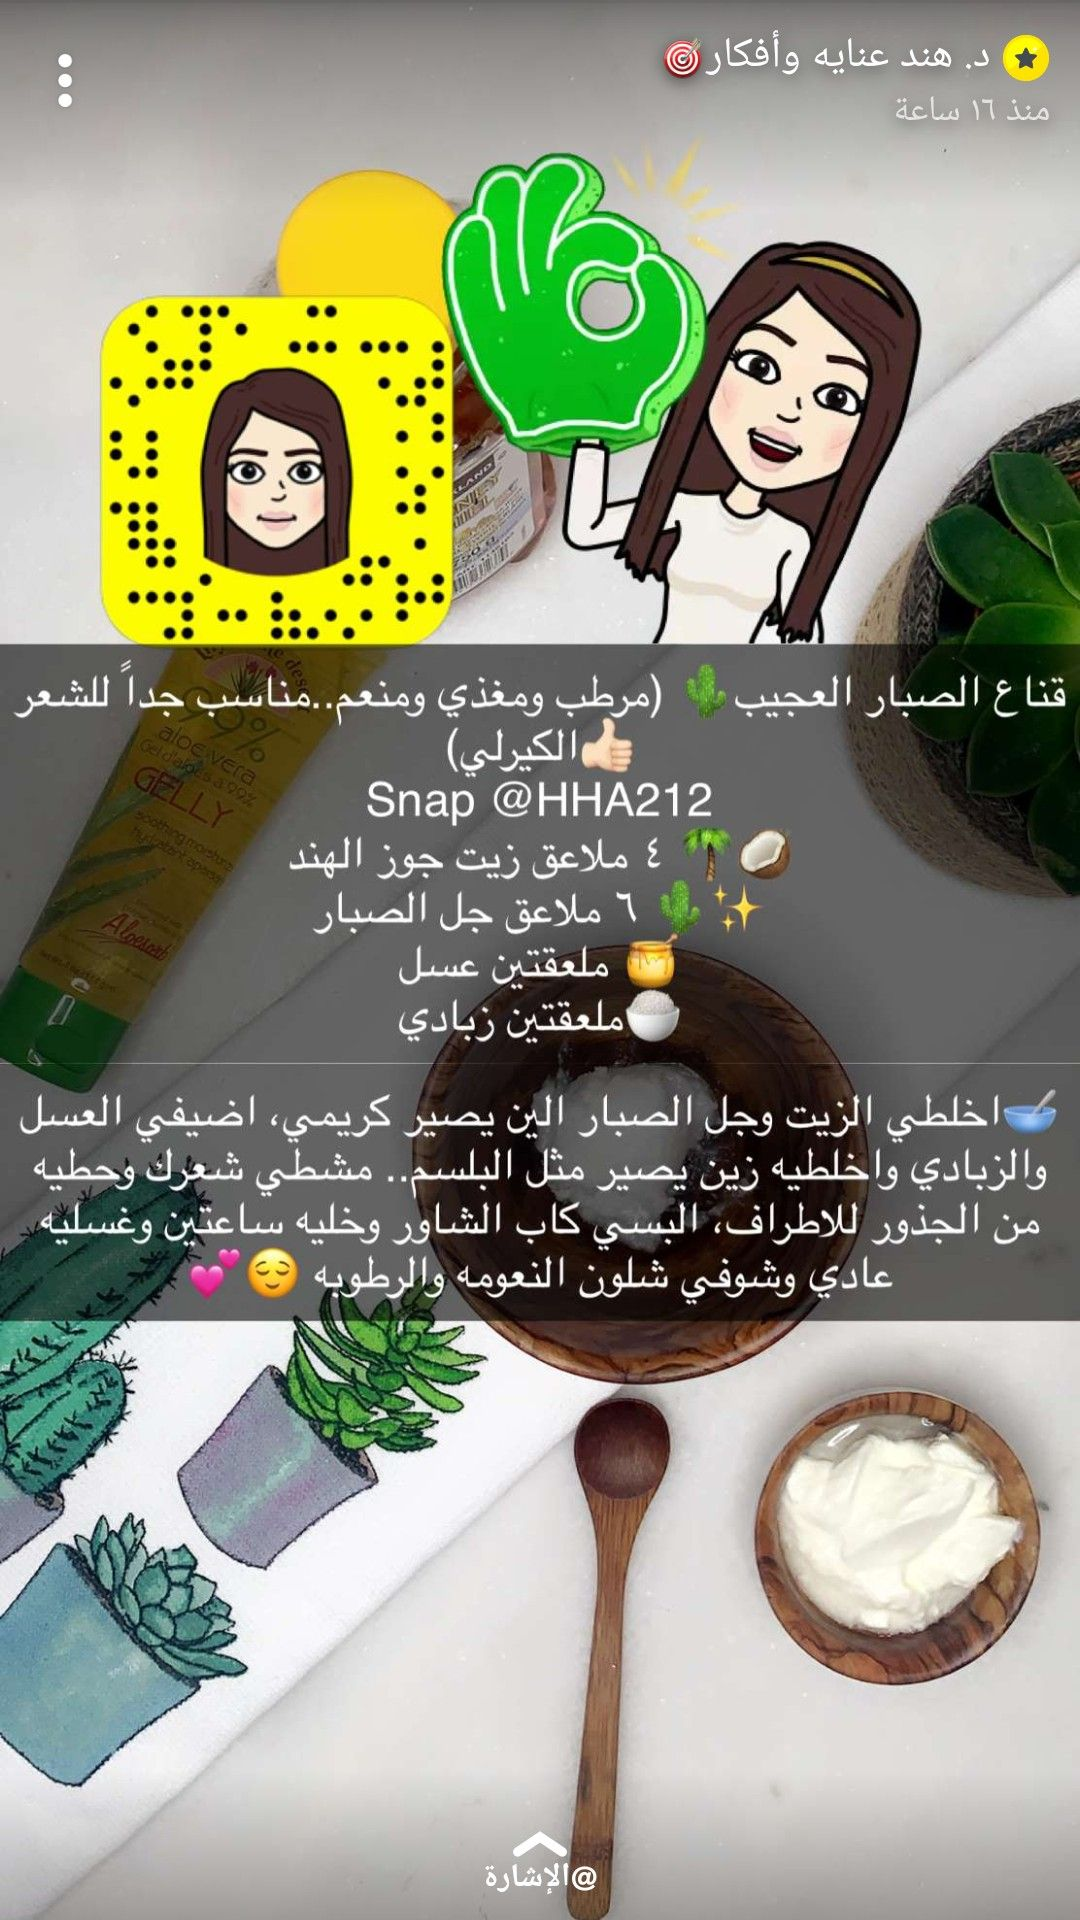 Pin By وهم On د هند عنايه وأفكار Skin Care Women Hair Care Recipes Beauty Skin Care Routine